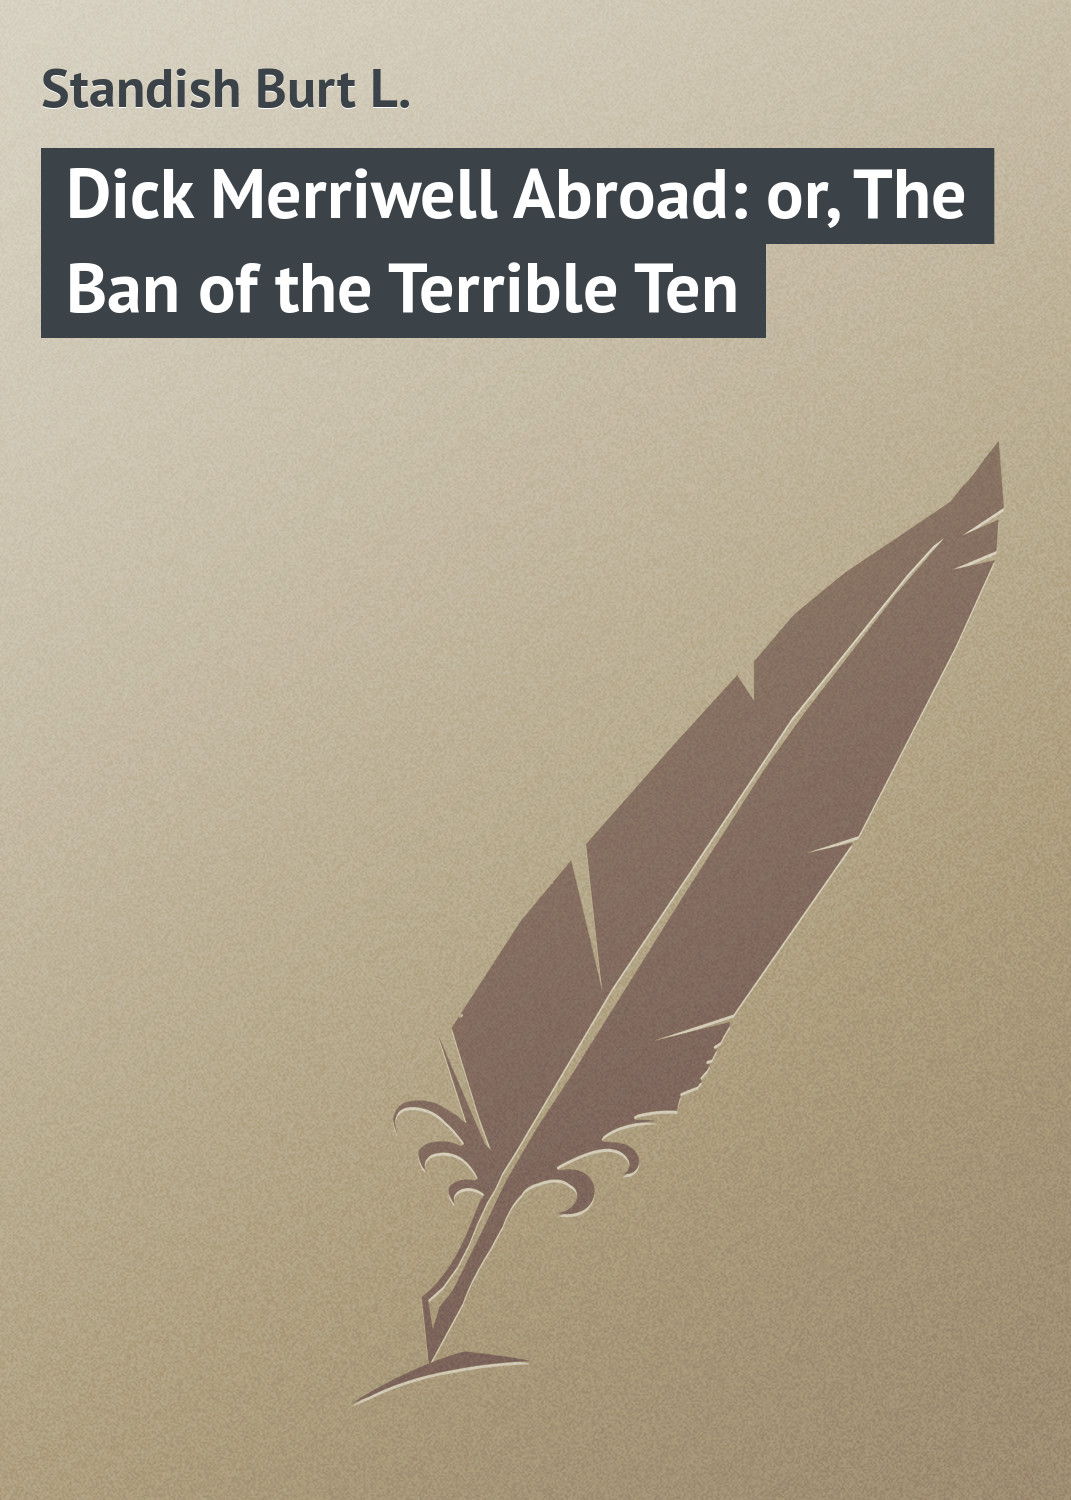 Dick Merriwell Abroad: or, The Ban of the Terrible Ten